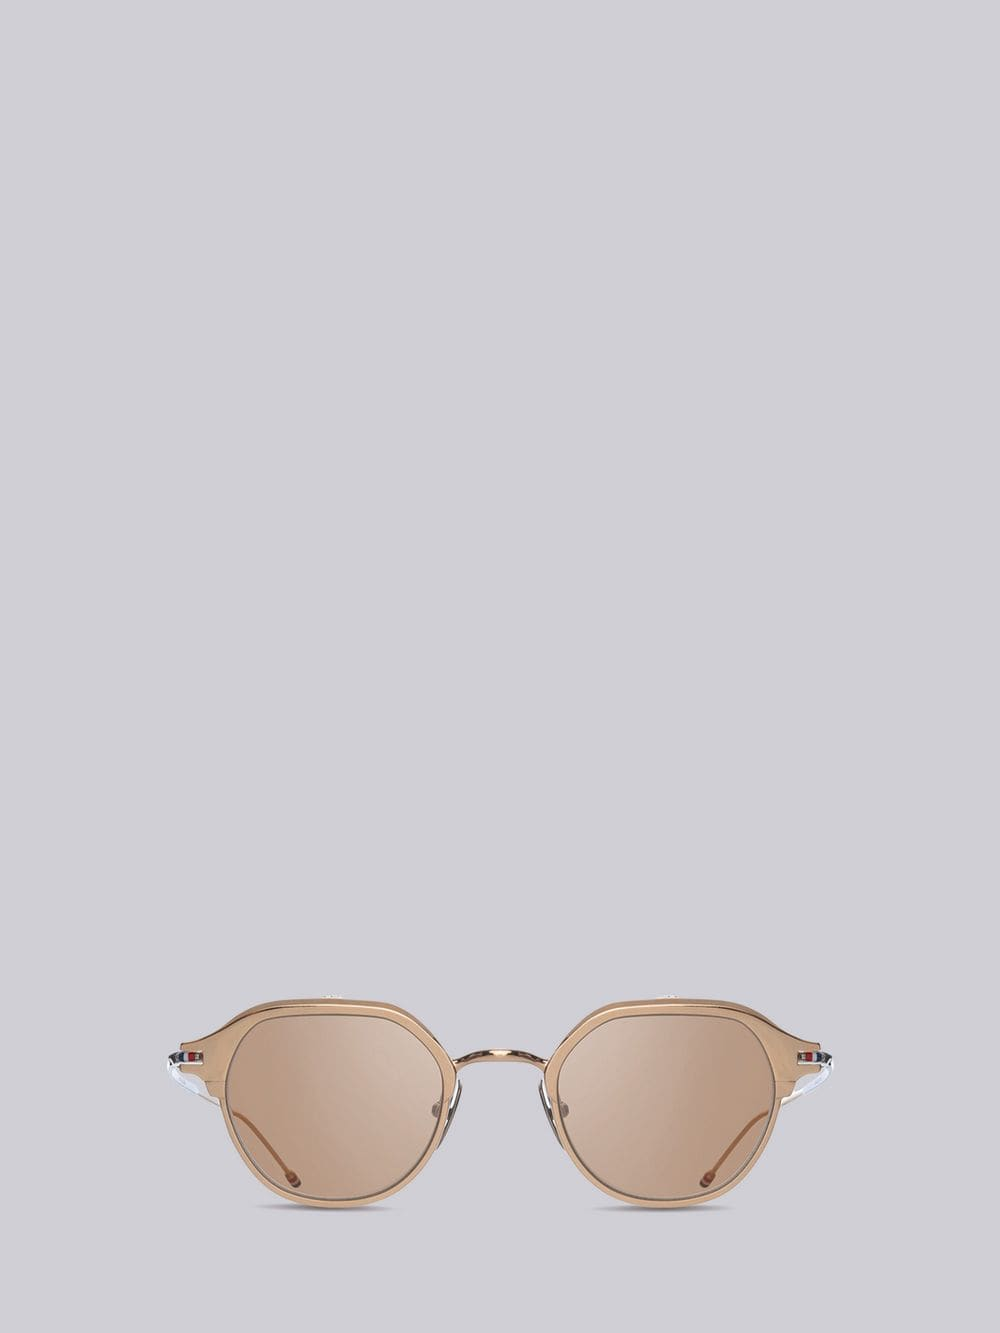 White Gold & Silver Sunglasses 2.jpg